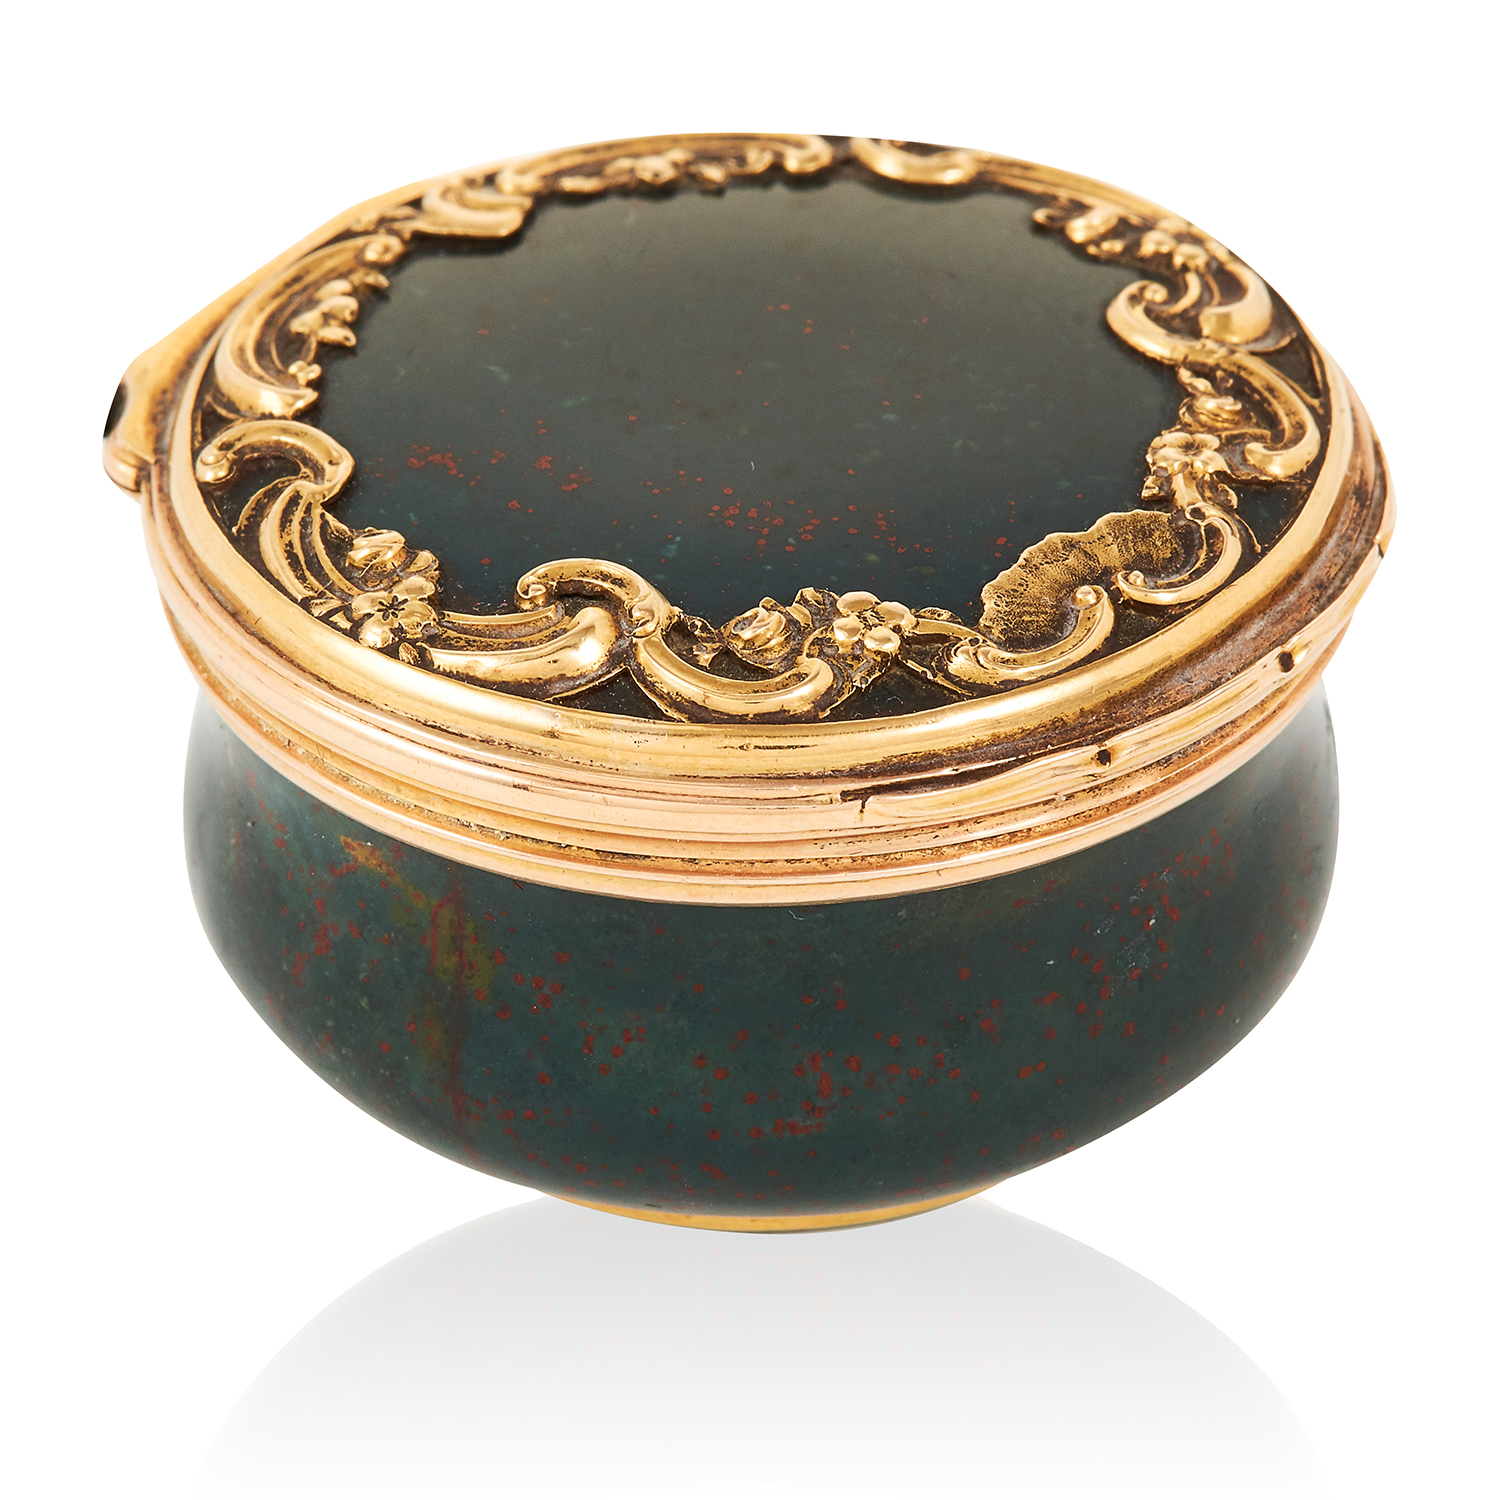 Los 383 - AN ANTIQUE AGATE SNUFF BOX, FROM 'THE DUKE OF CAMBRIDGE SALE' in high carat yellow gold, carved from